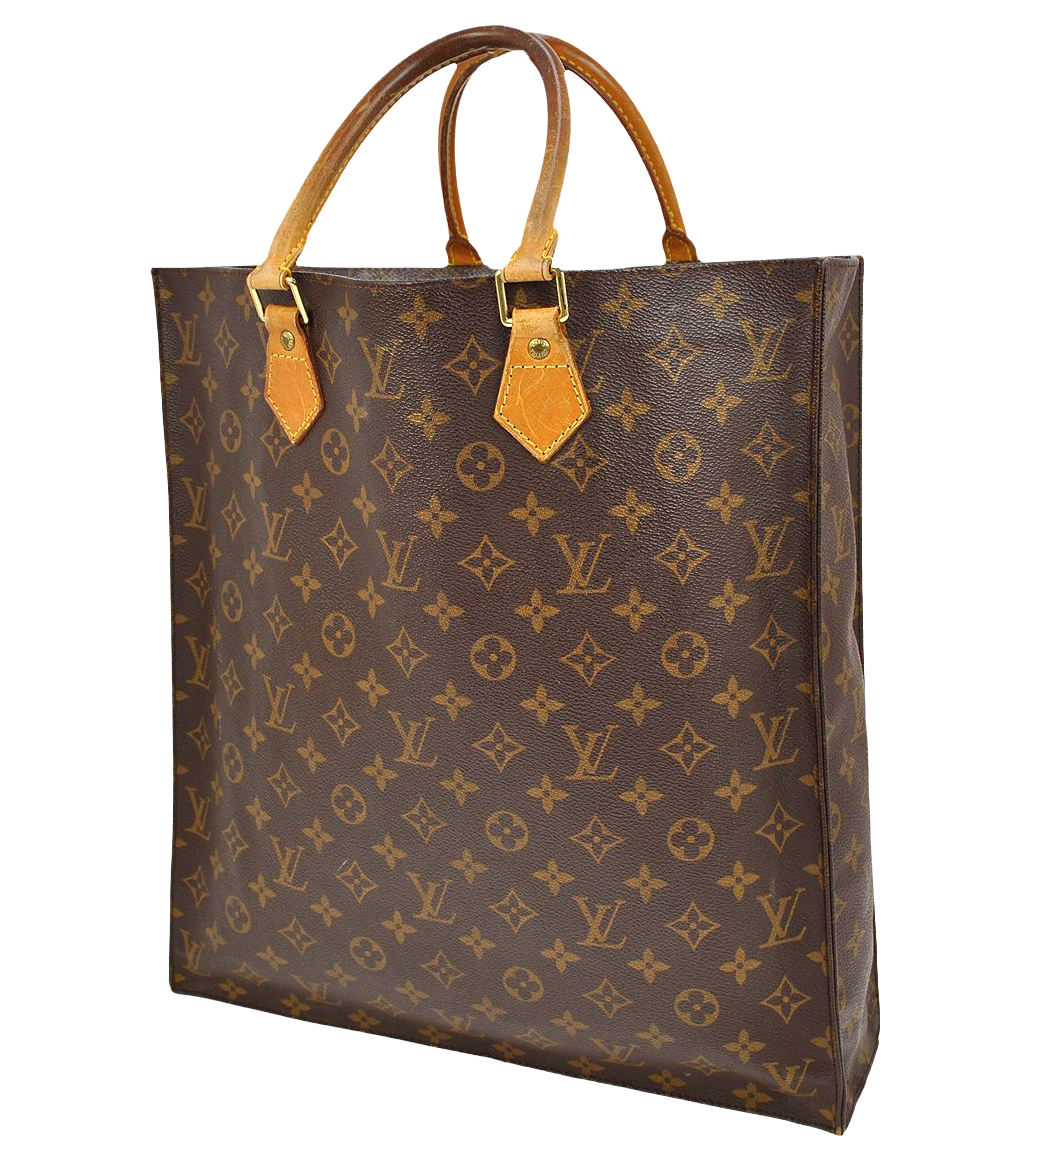 Sac Louis Vuitton Sac Plat